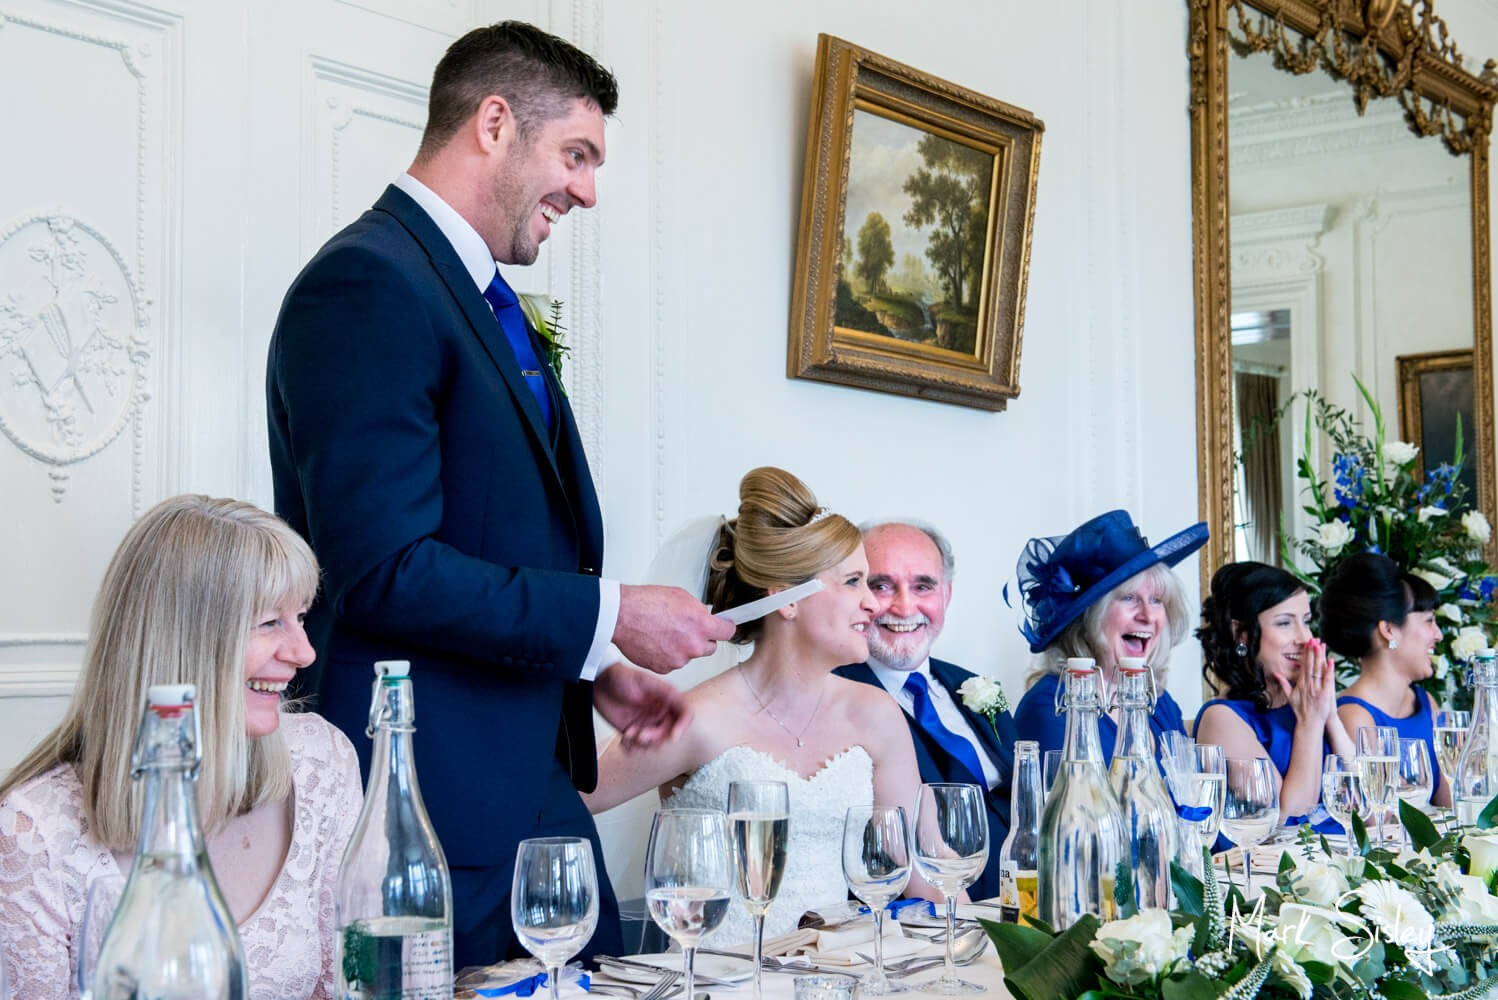 Taplow House wedding speeches make for great photos